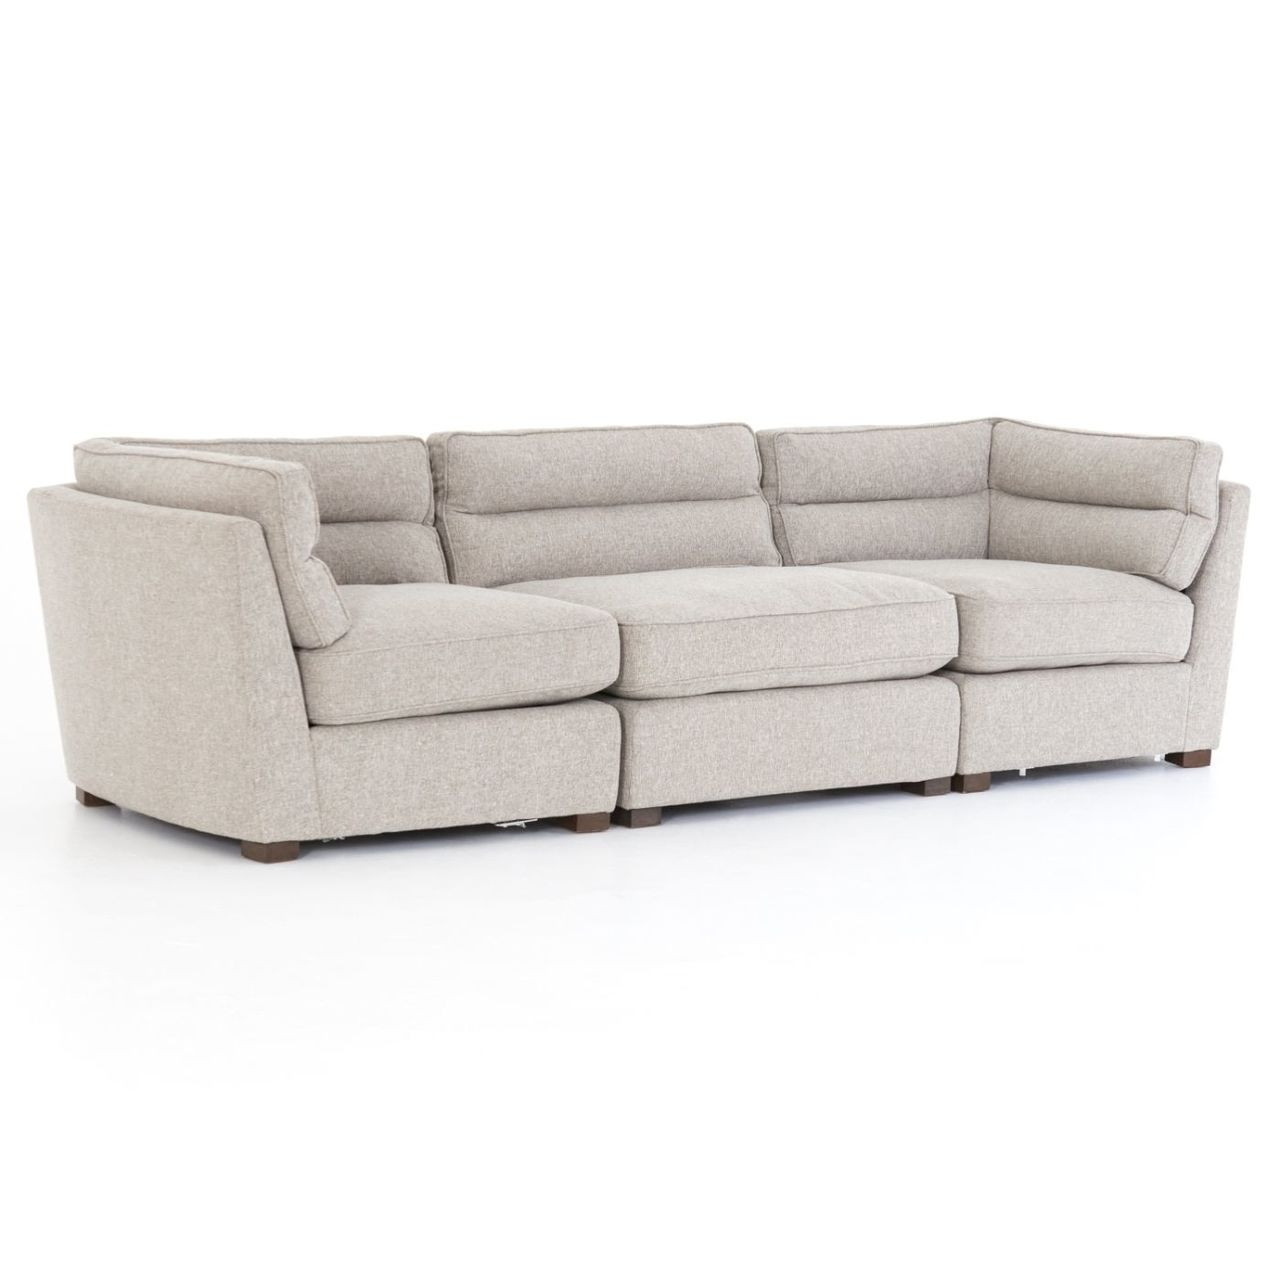 Connell Channel Back 3 Pc Modular Sofa 114